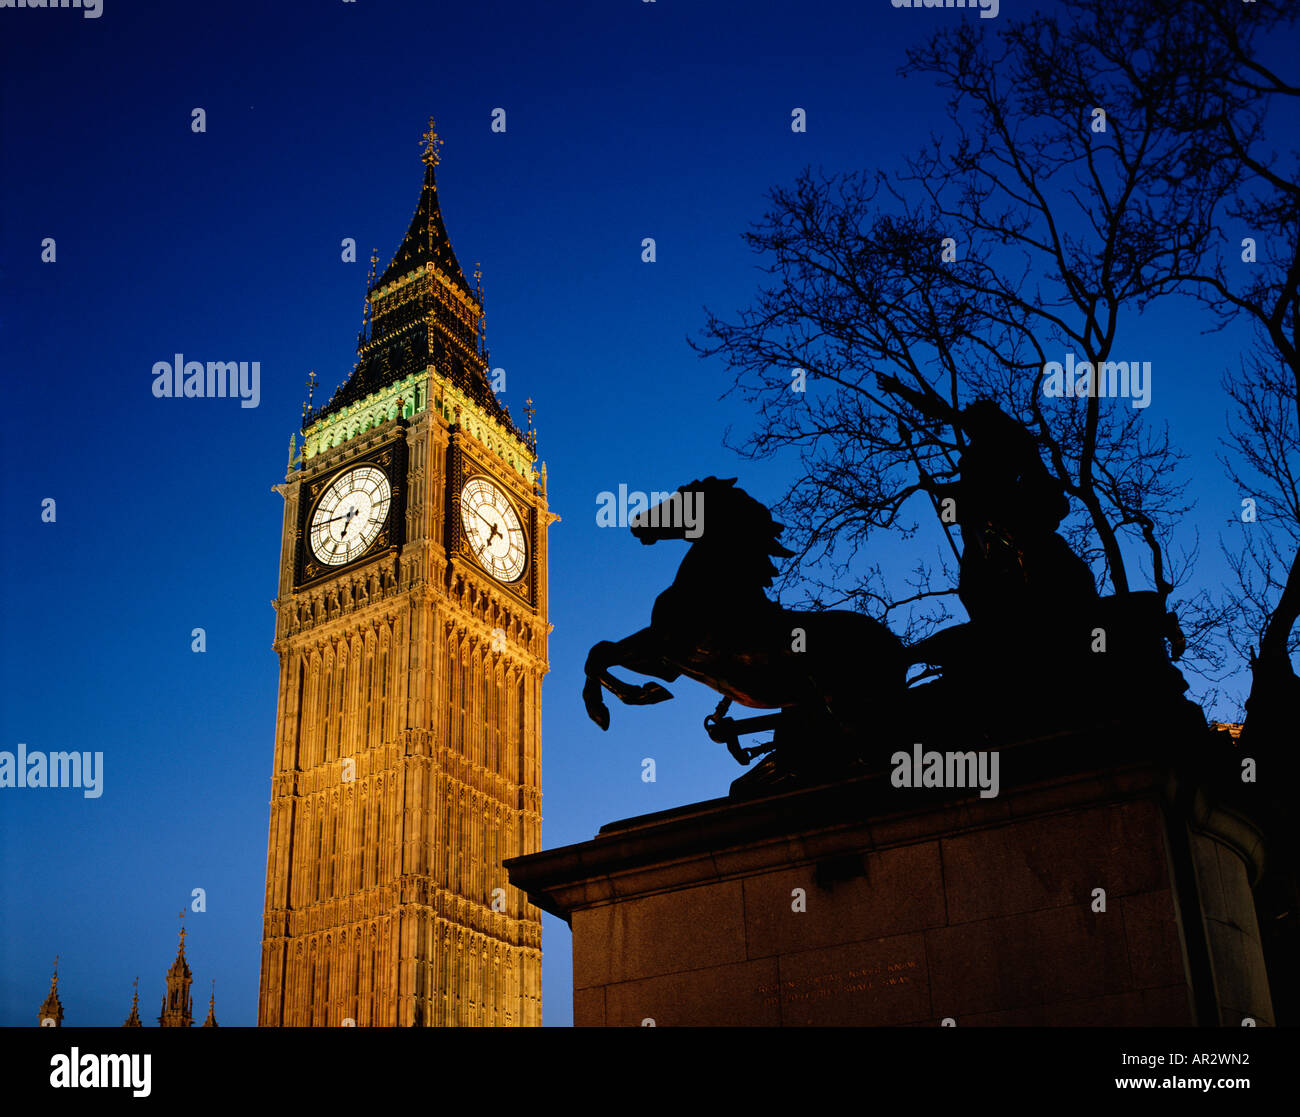 Big Ben clock floodlit at night, with the Statue of Boadicea silhouetted on the embankment at  Westminster, England, United Kingdom, UK, GB - Stock Image